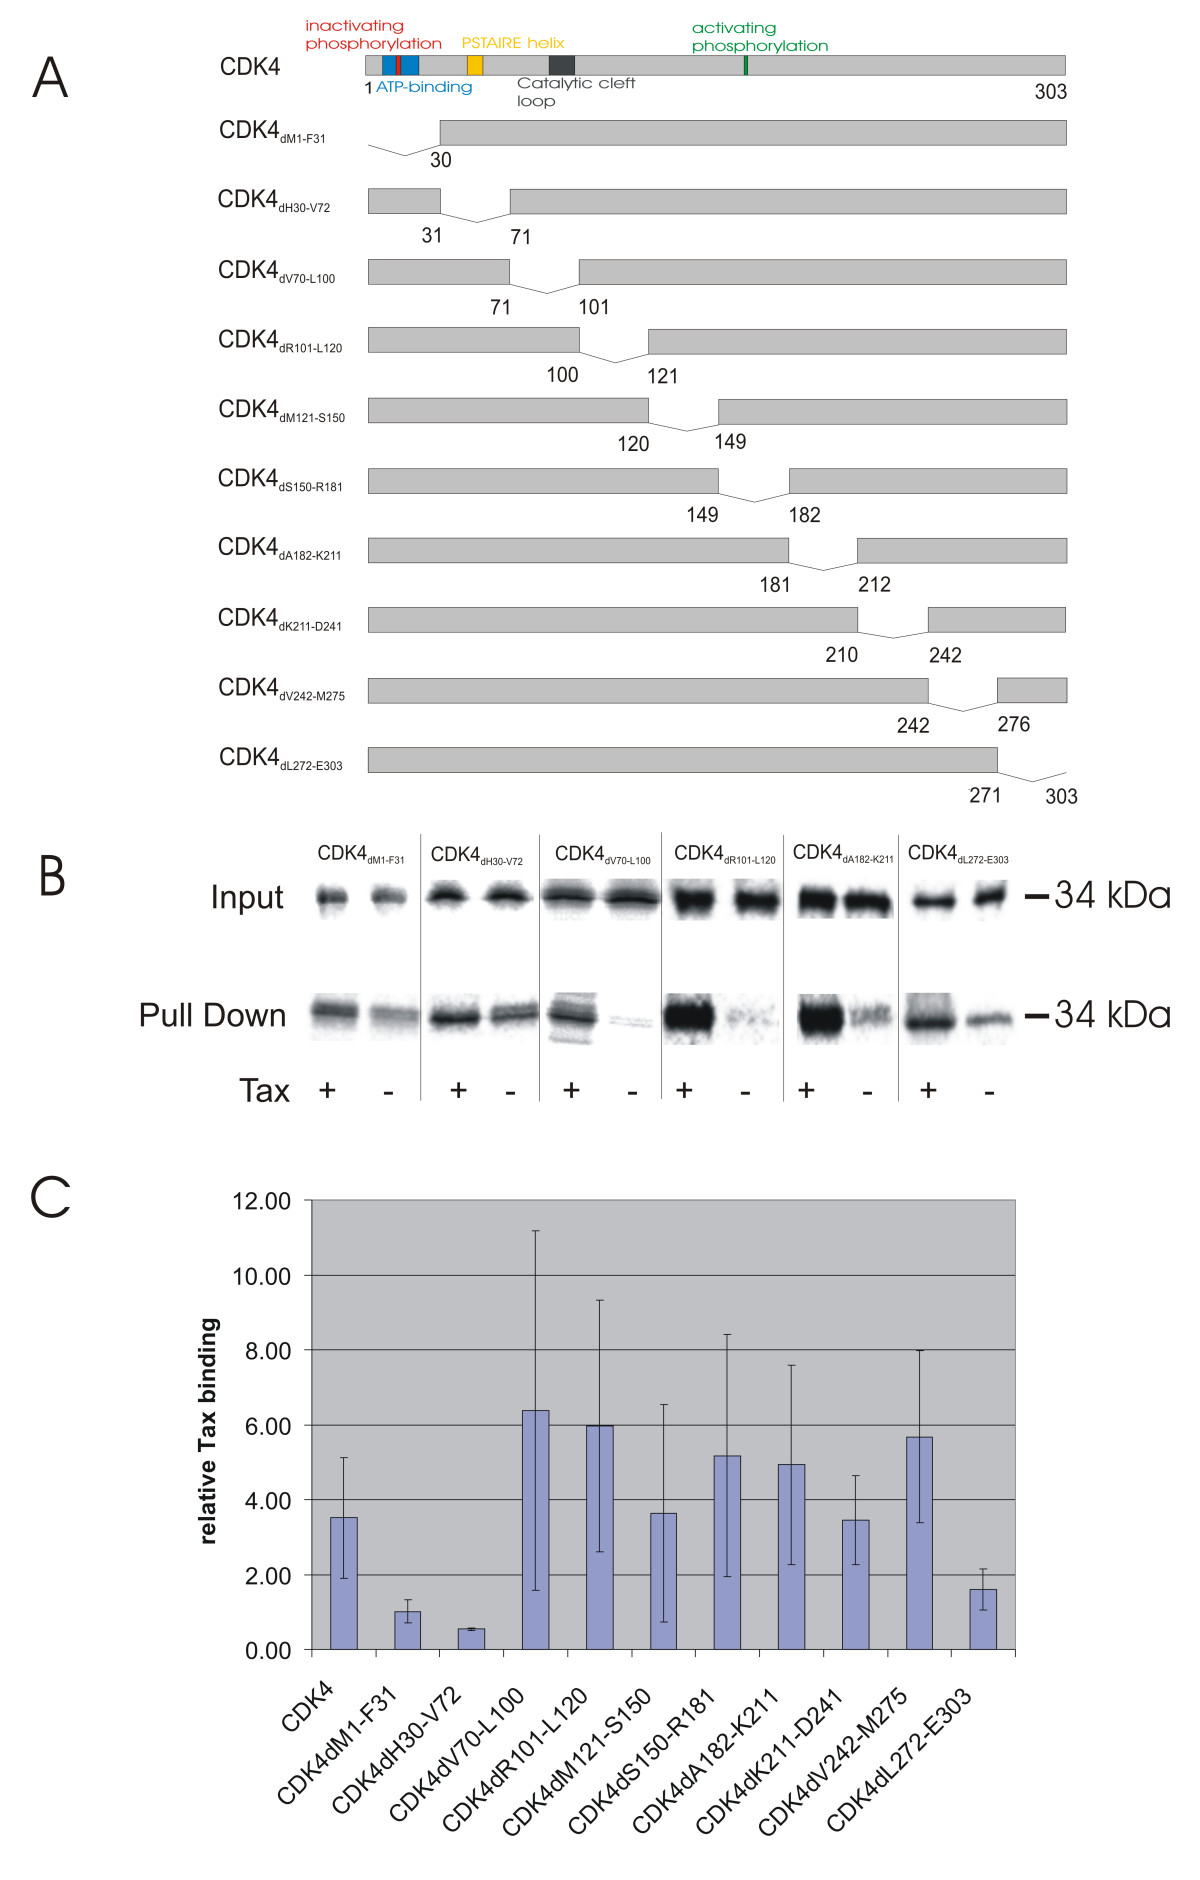 https://static-content.springer.com/image/art%3A10.1186%2F1742-4690-2-54/MediaObjects/12977_2005_Article_100_Fig2_HTML.jpg